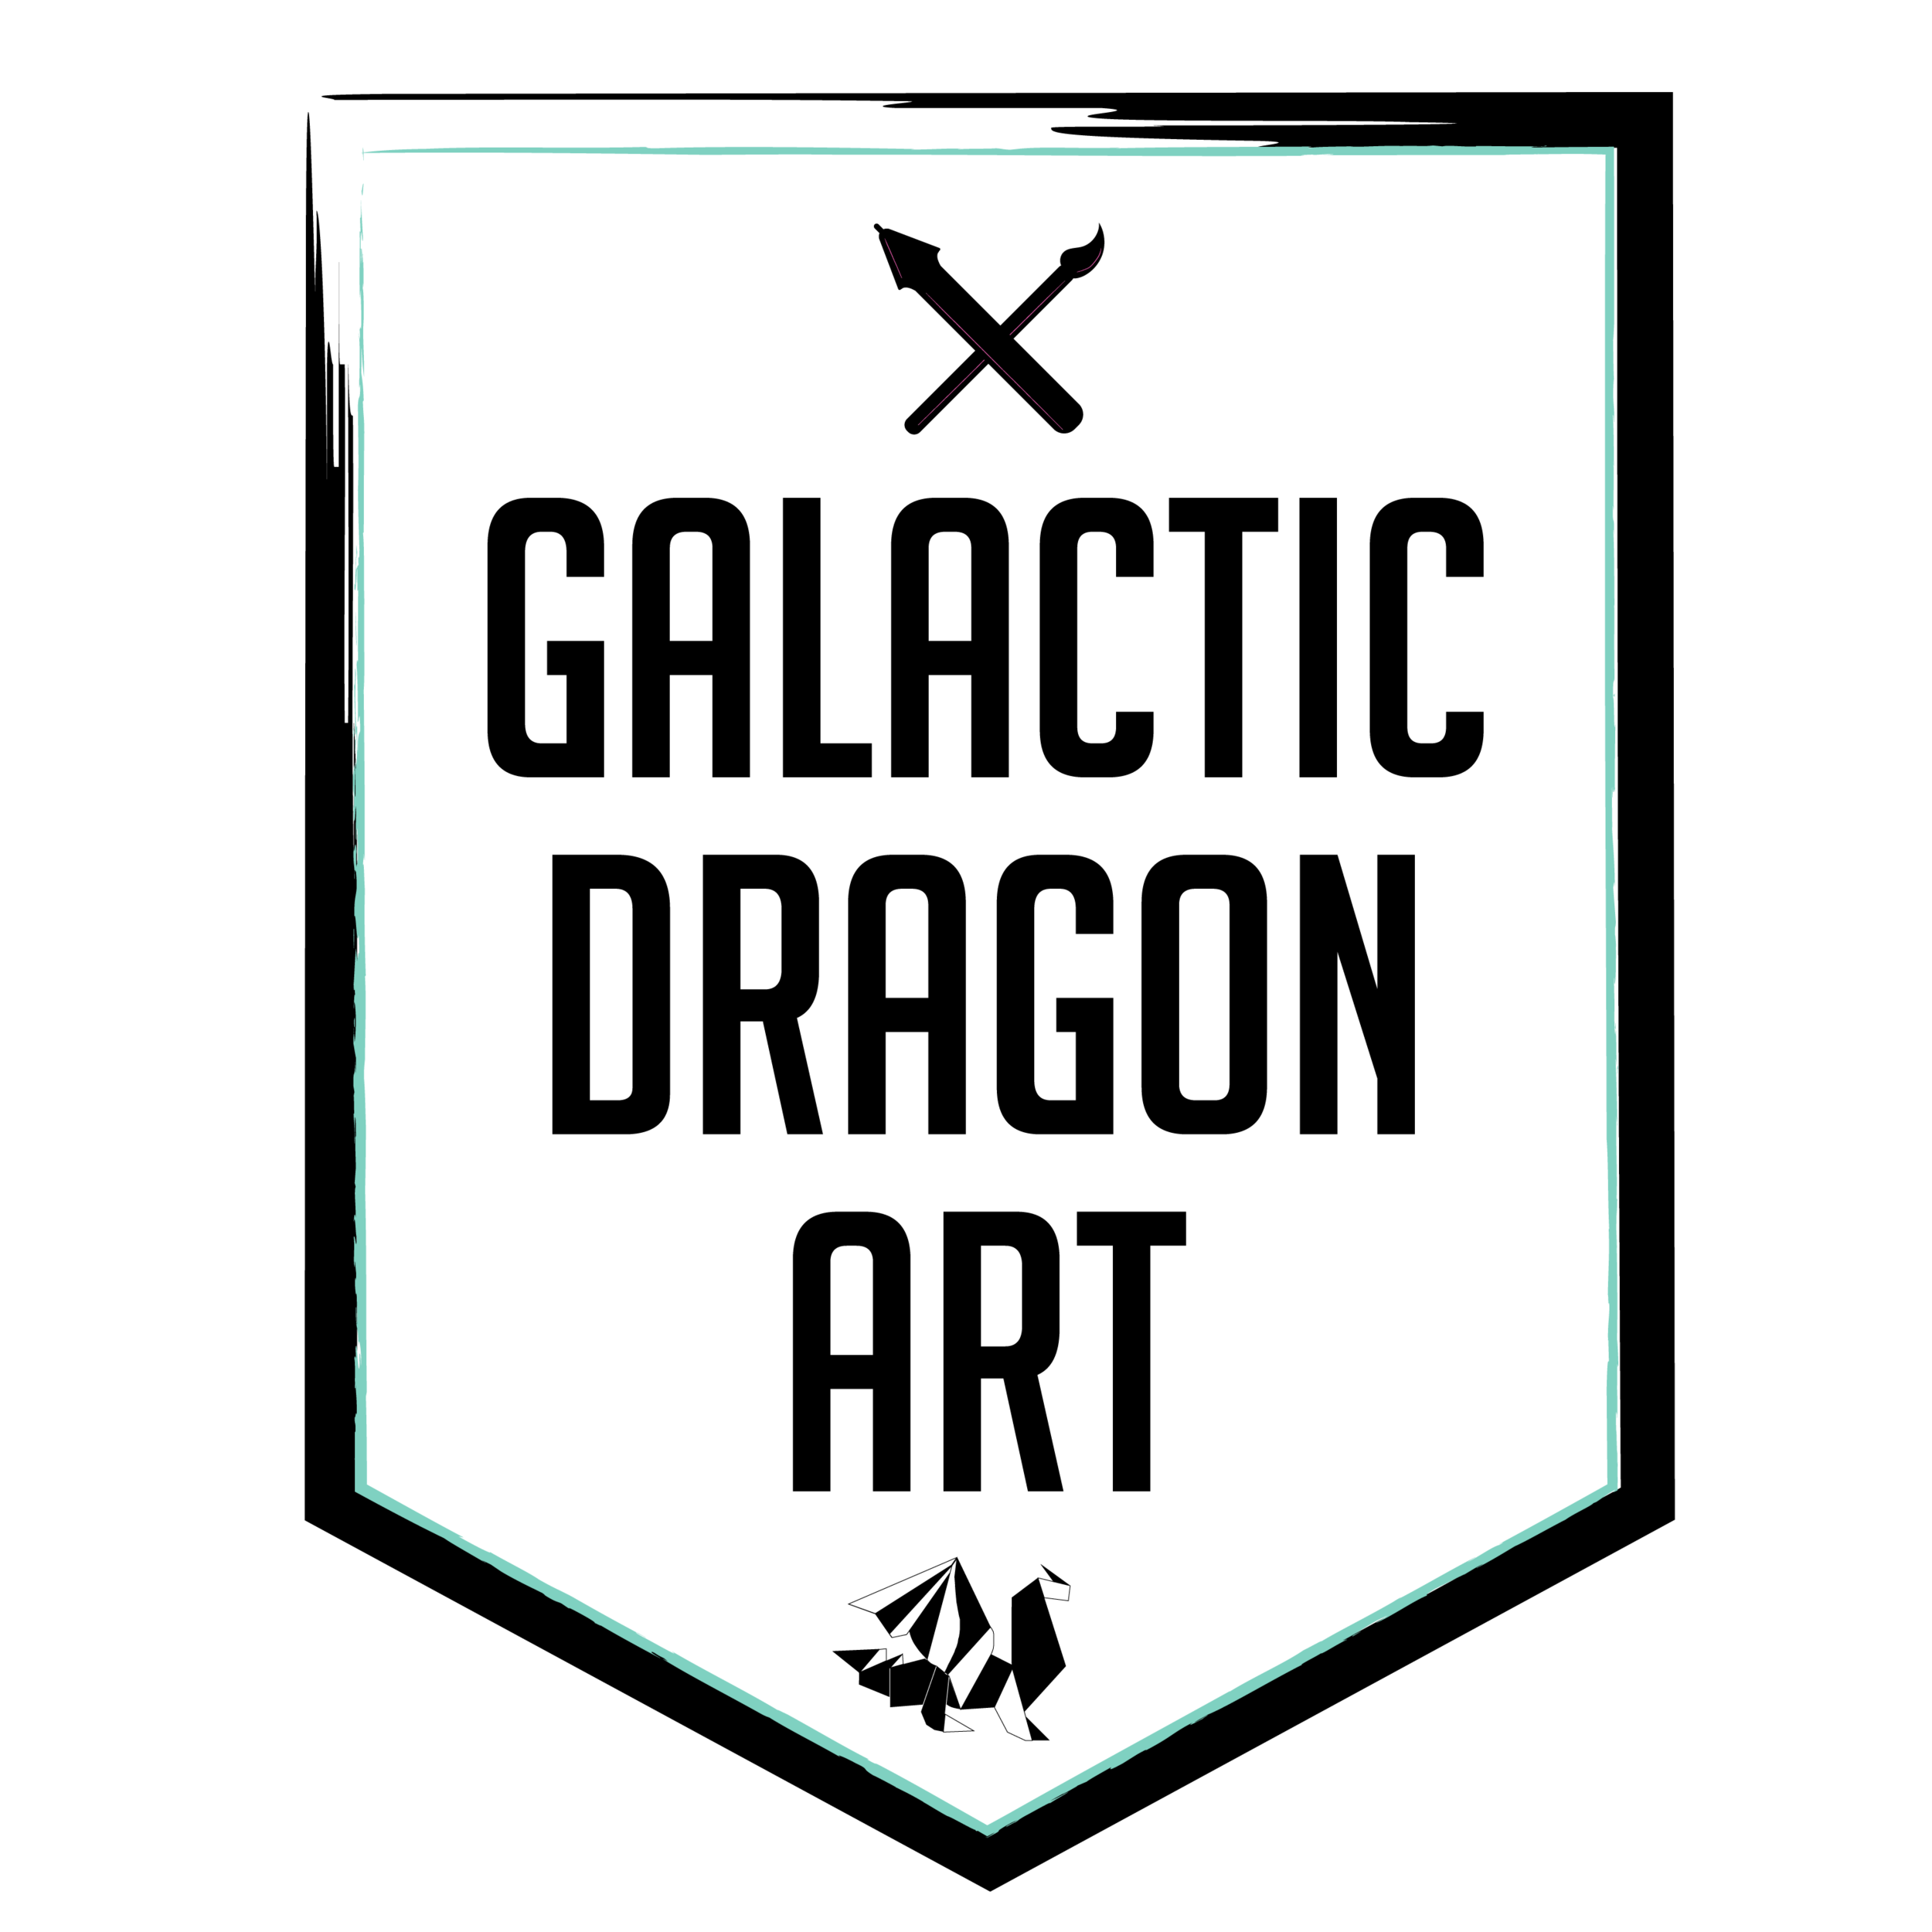 Galactic Dragon Art